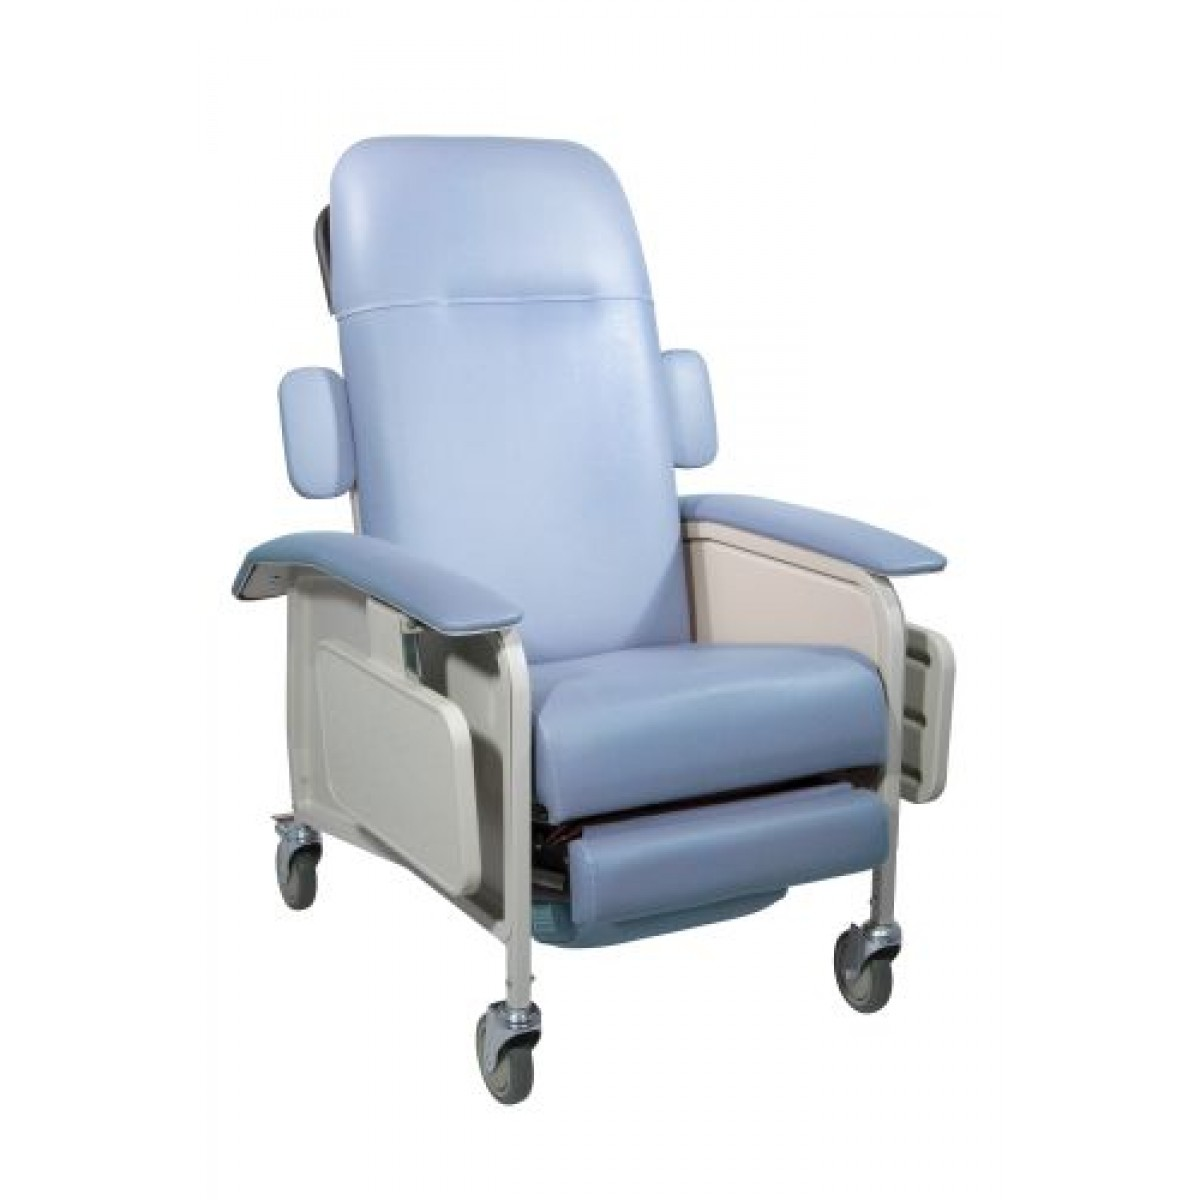 Geriatric Chairs Clinical Care Geri Chair Recliner By Drive Medical D577 Br